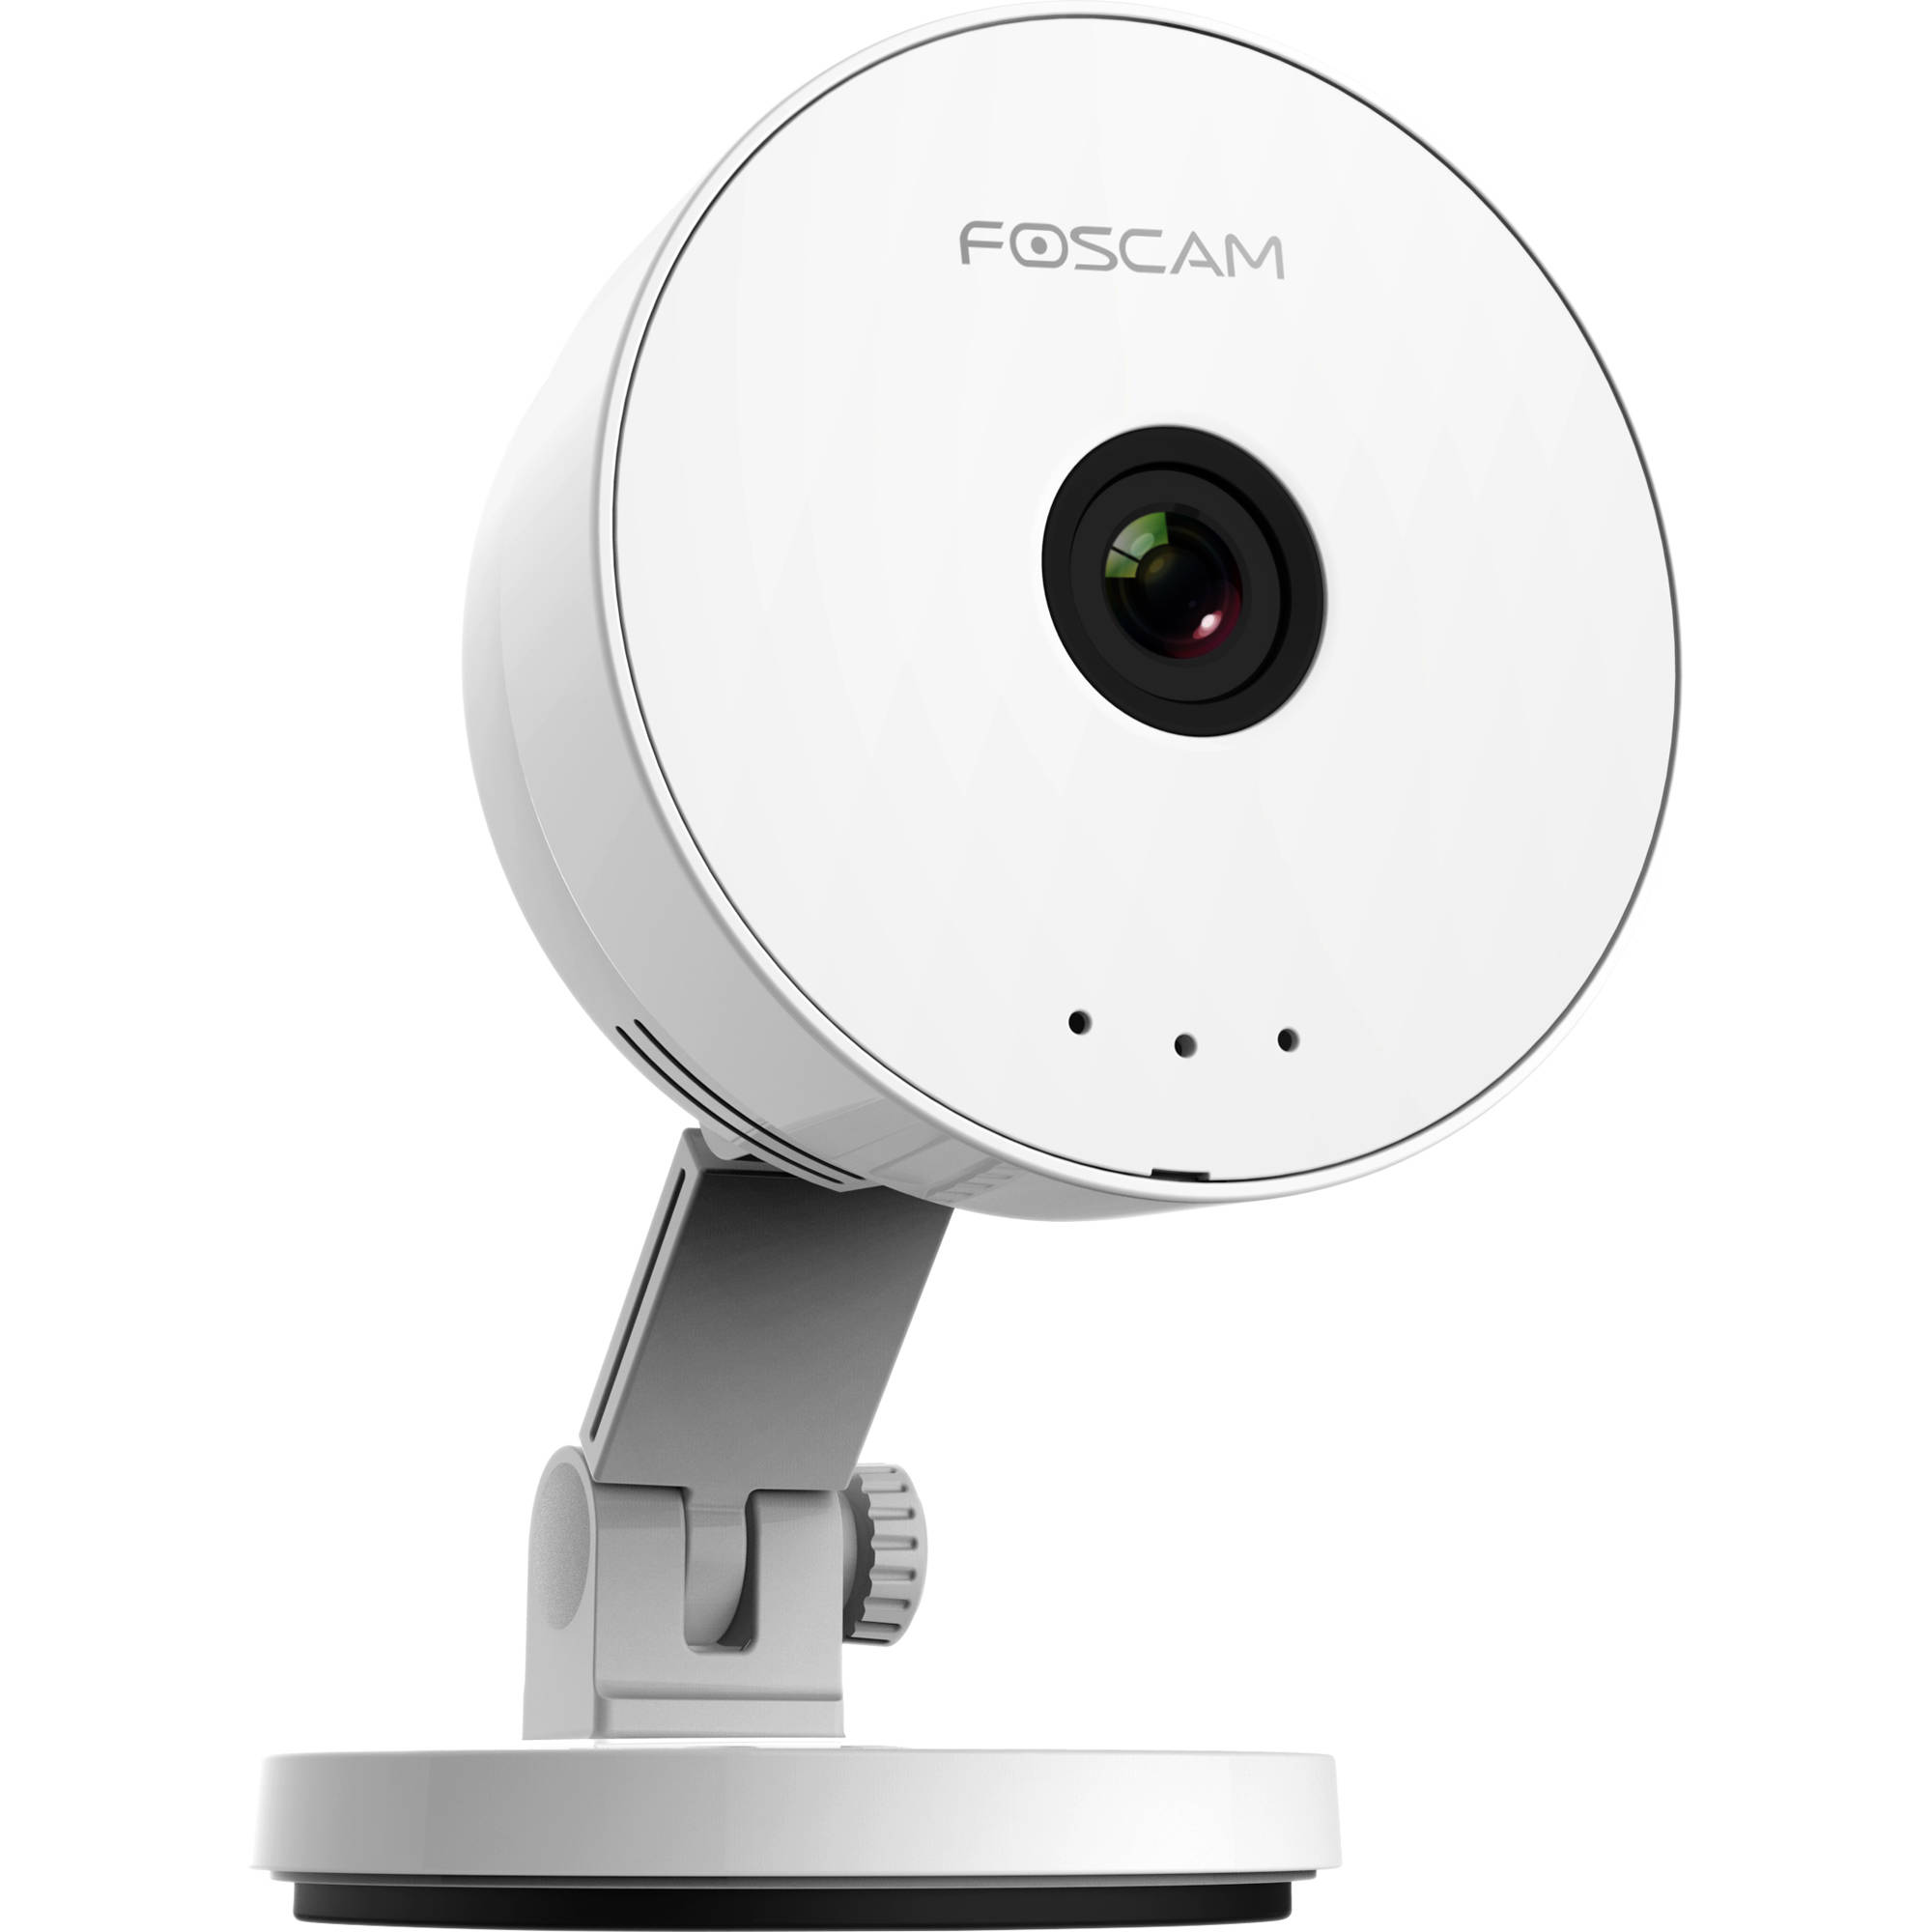 Foscam C1 IP Camera Drivers for PC